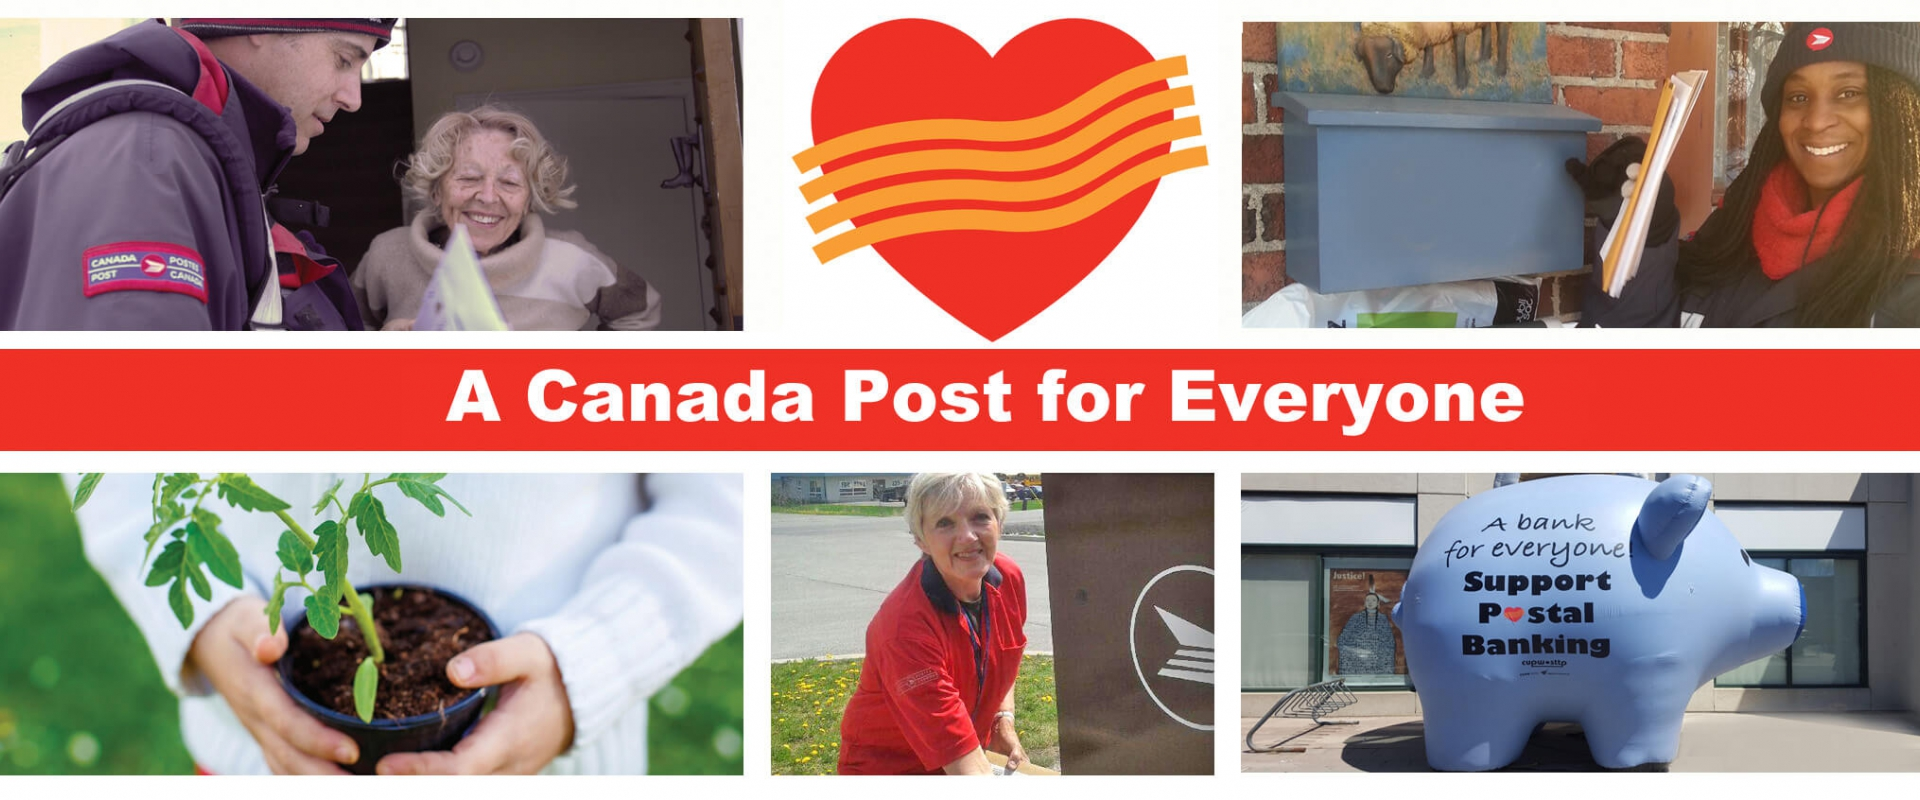 A Canada Post for Everyone - Government Review of Canada Post